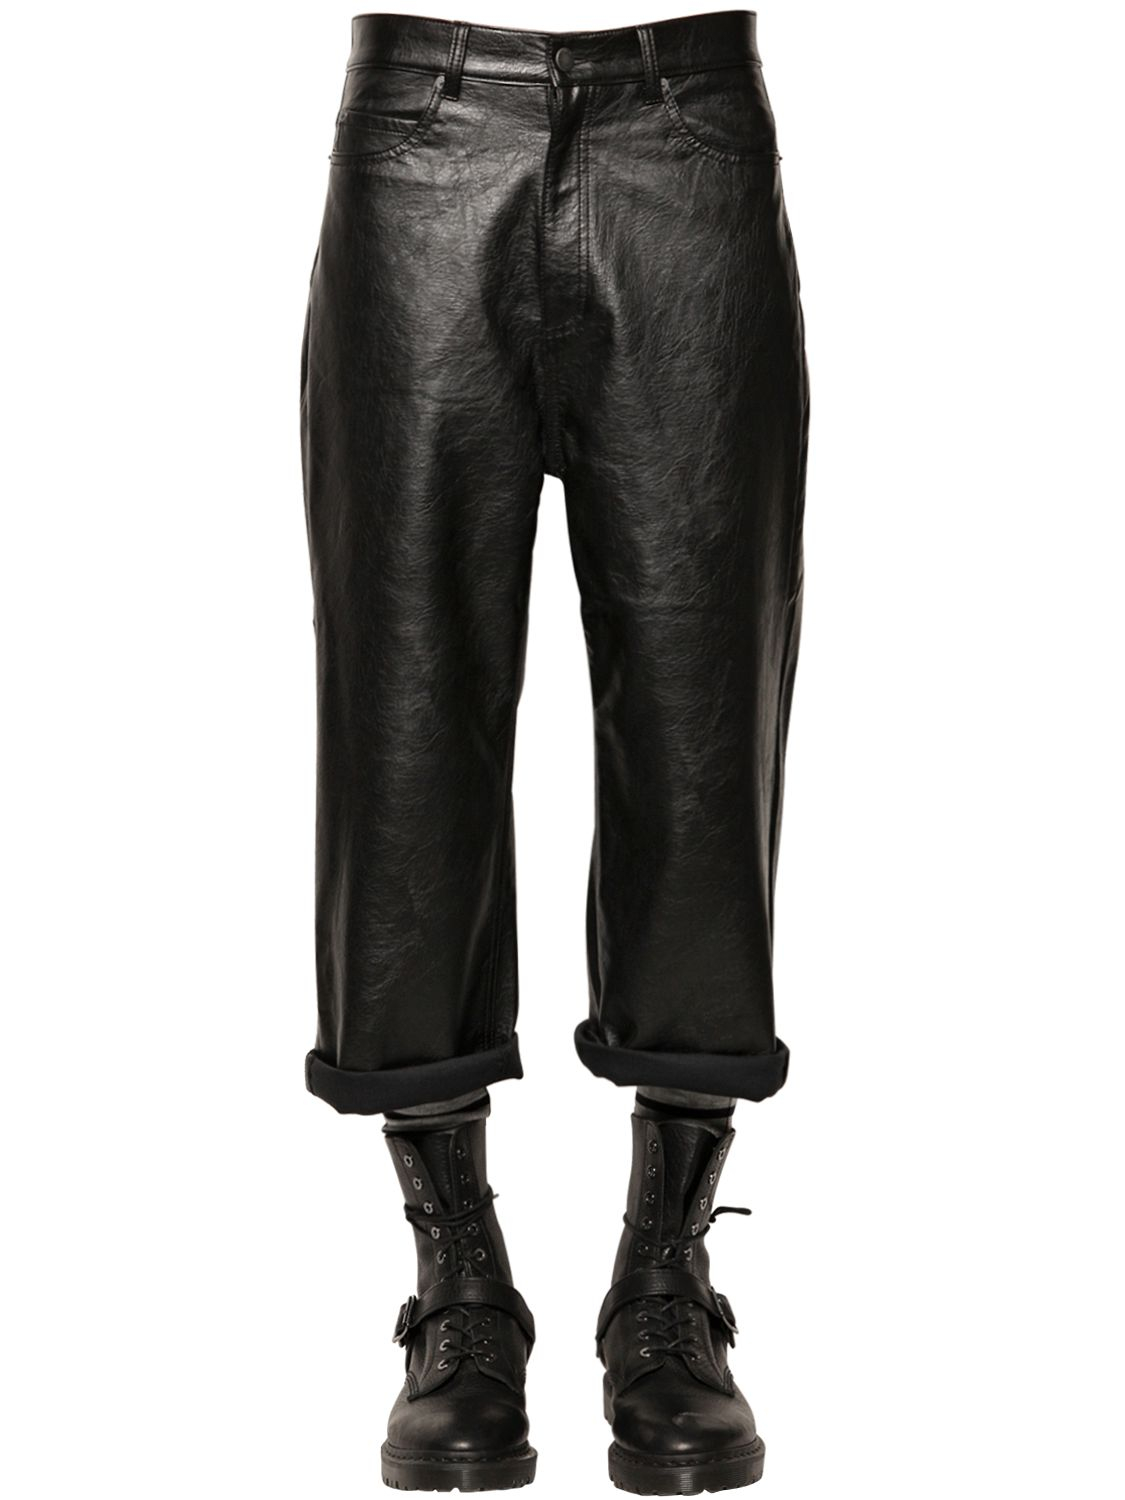 Find Women's Leather Pants and Juniors Leather Pants that aim to please for any occasion, all at Macy's. Macy's Presents: The Edit - A curated mix of fashion and inspiration Check It Out Free Shipping with $99 purchase + Free Store Pickup.